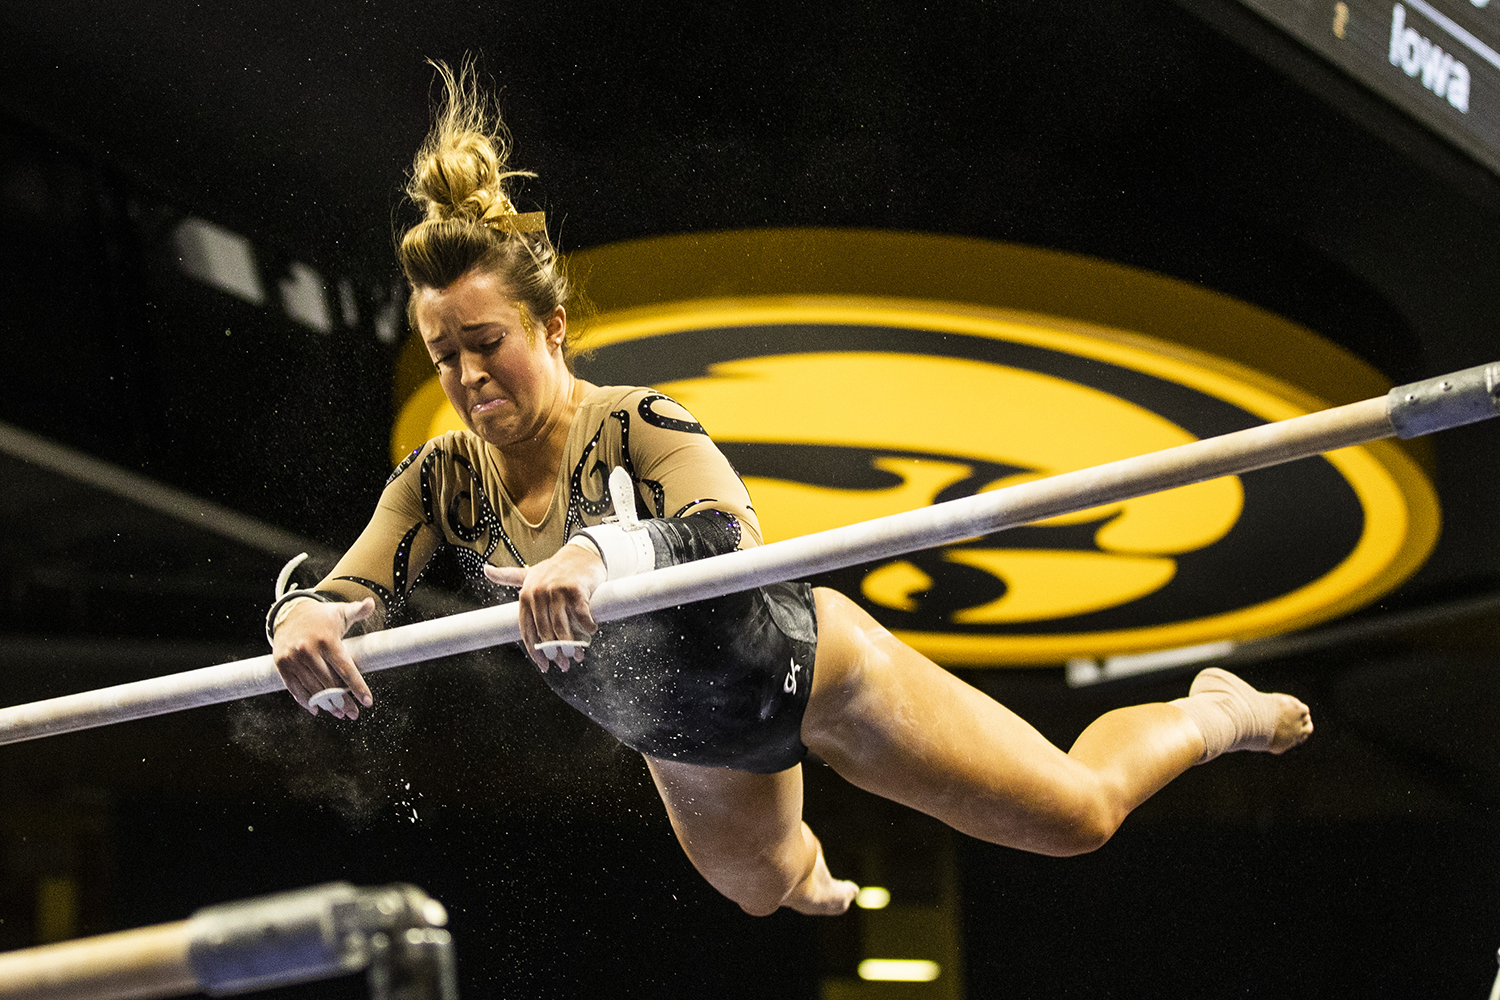 Iowa+gymnast+Maddie+Kampschroeder+performs+on+the+uneven+bars+during+the+women%27s+gymnastics+meet+vs.+SEMO+at+Carver-Hawkeye+Arena+on+Friday%2C+January+11%2C+2019.+The+GymHawks+defeated+the+Redhawks+194.700-180.925.+